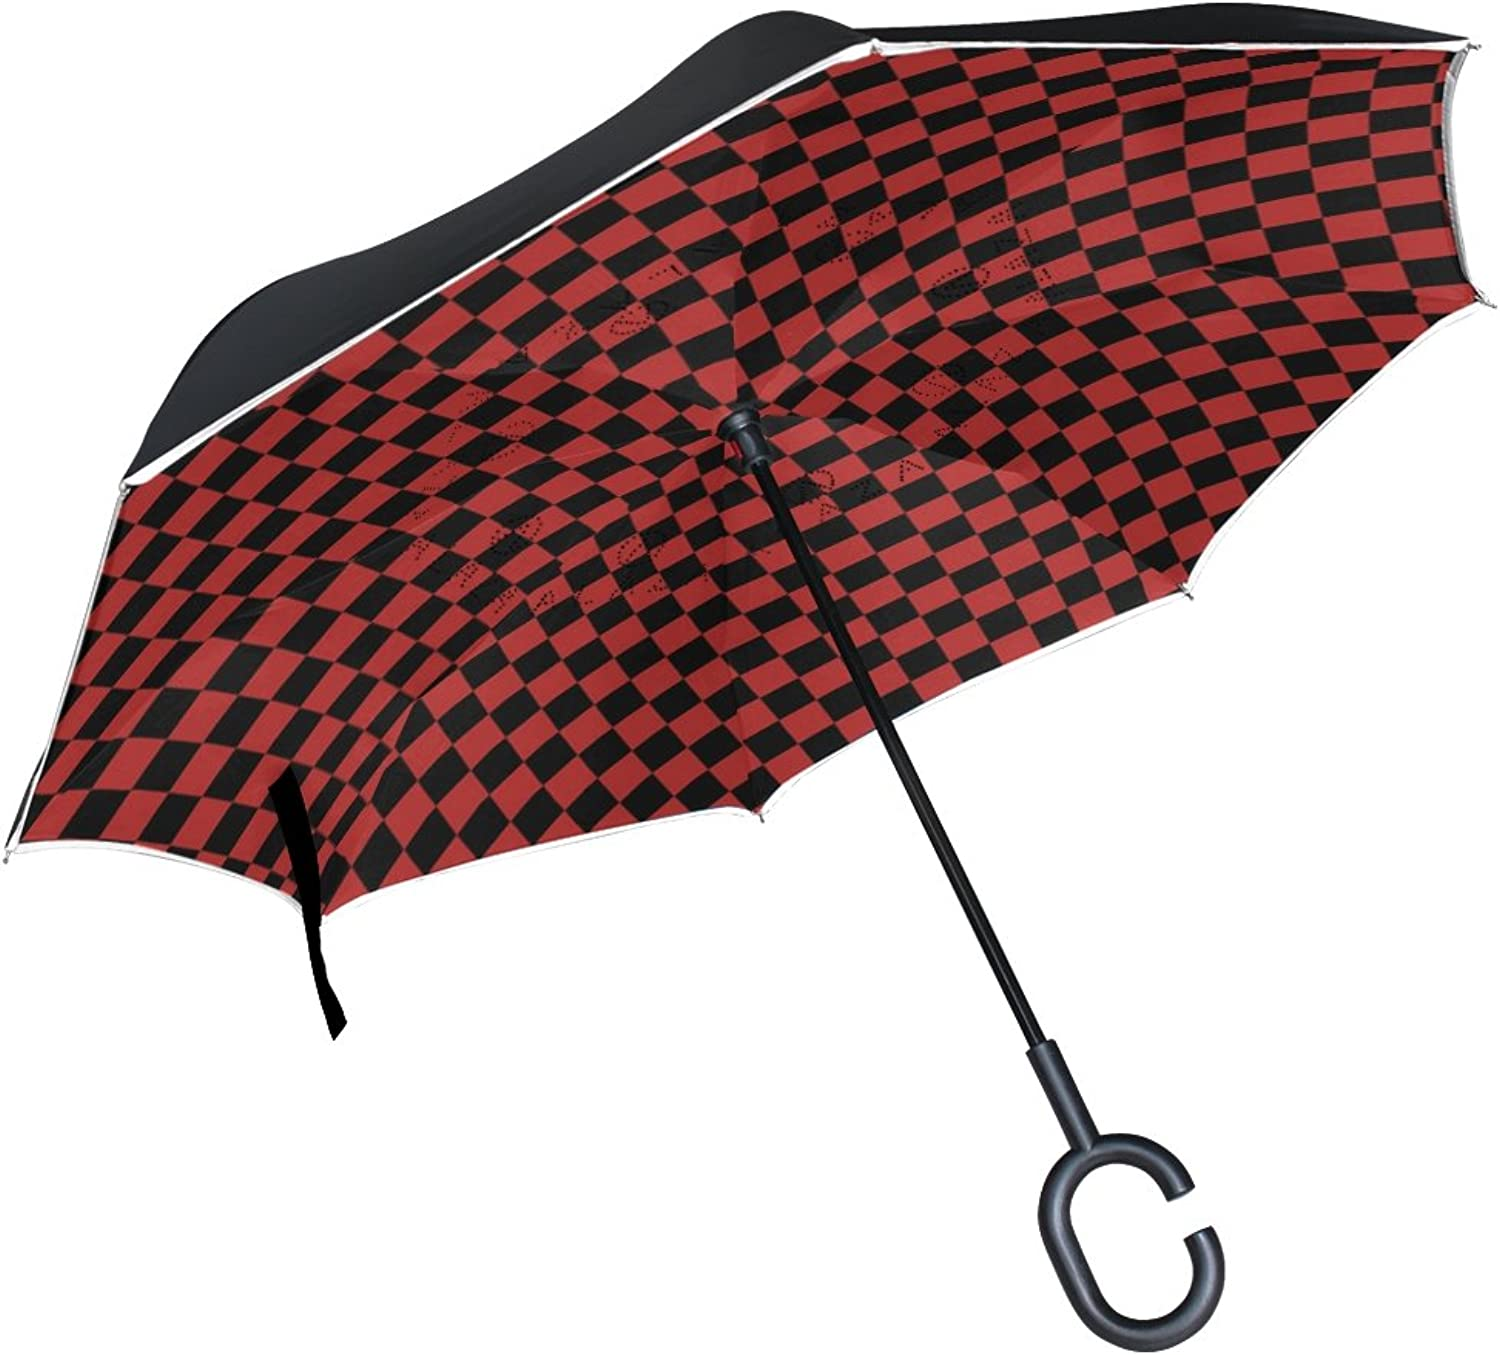 LEISISI Black and Red Checkered Squares Double Layer Ingreened Umbrella Reverse Auto Open Umbrella Windproof UV Predection Upside Down Umbrella for Car Rain Outdoor Use